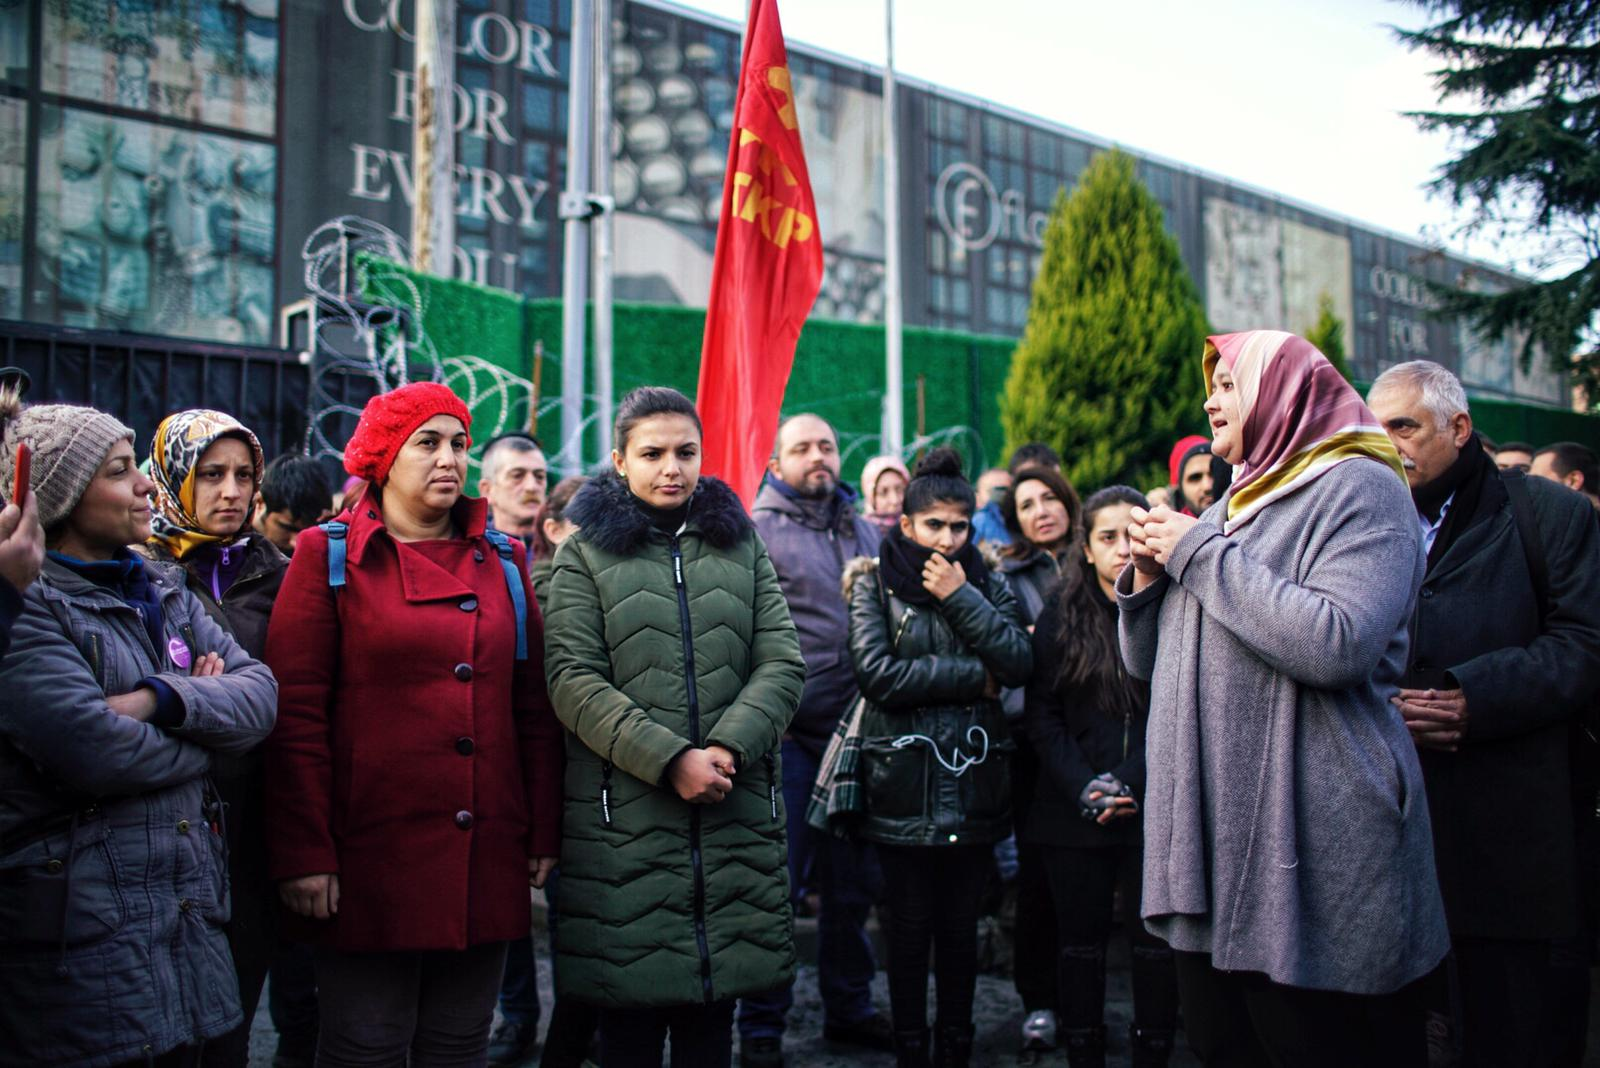 Fatma Akin addresses strikers who were laid off by cosmetic firm Flormar following their decision to join a union in city of Gebze (TKP))